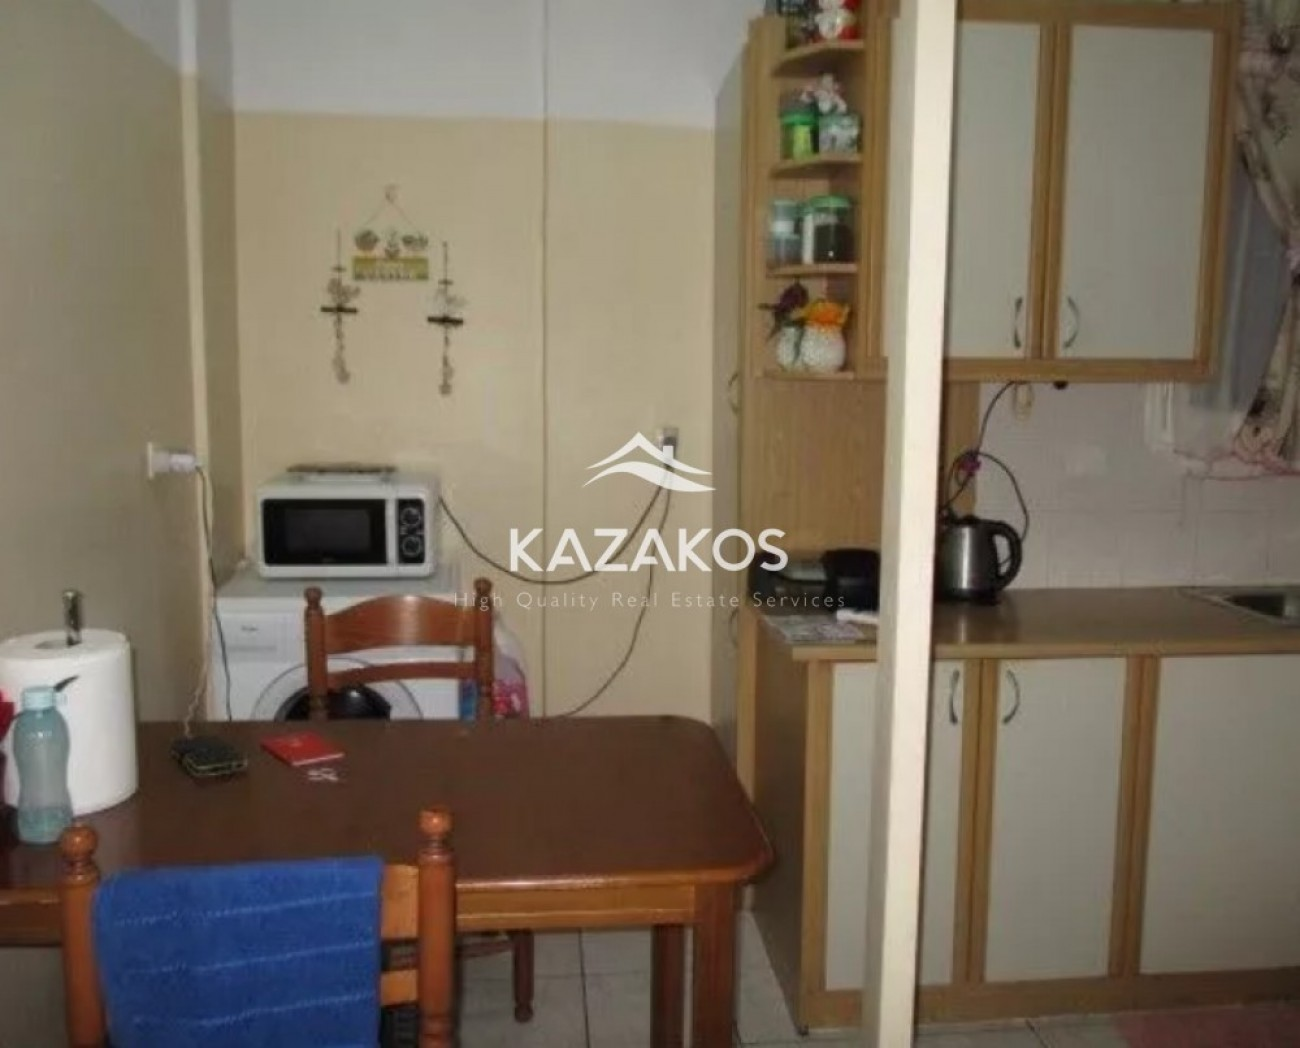 Apartment for Sale in Saint Konstantinos- Vathis Square, Athens City Center, Greece